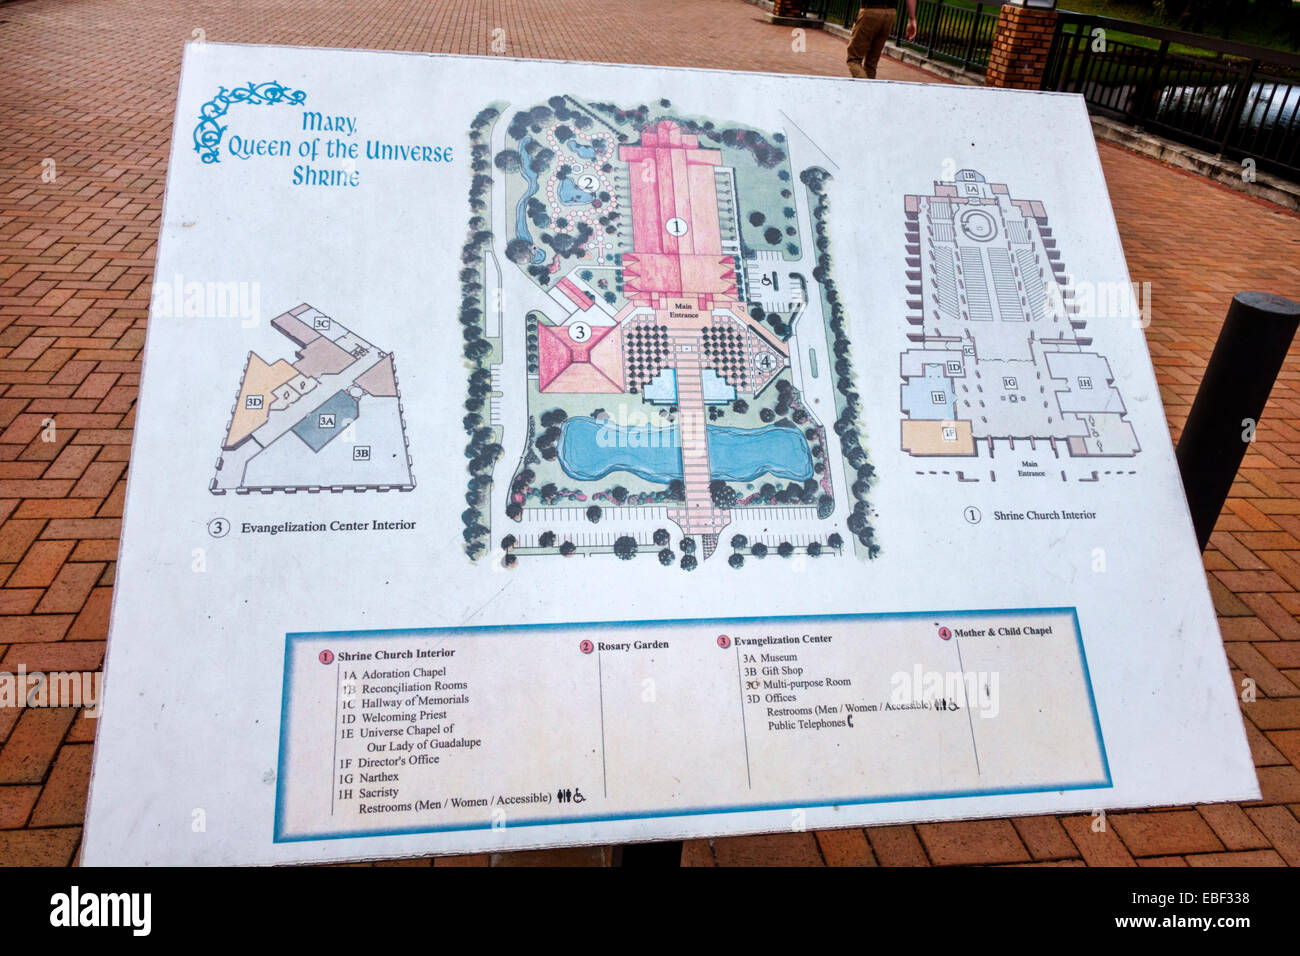 Orlando Florida Mary Queen of the Universe Shrine directory map